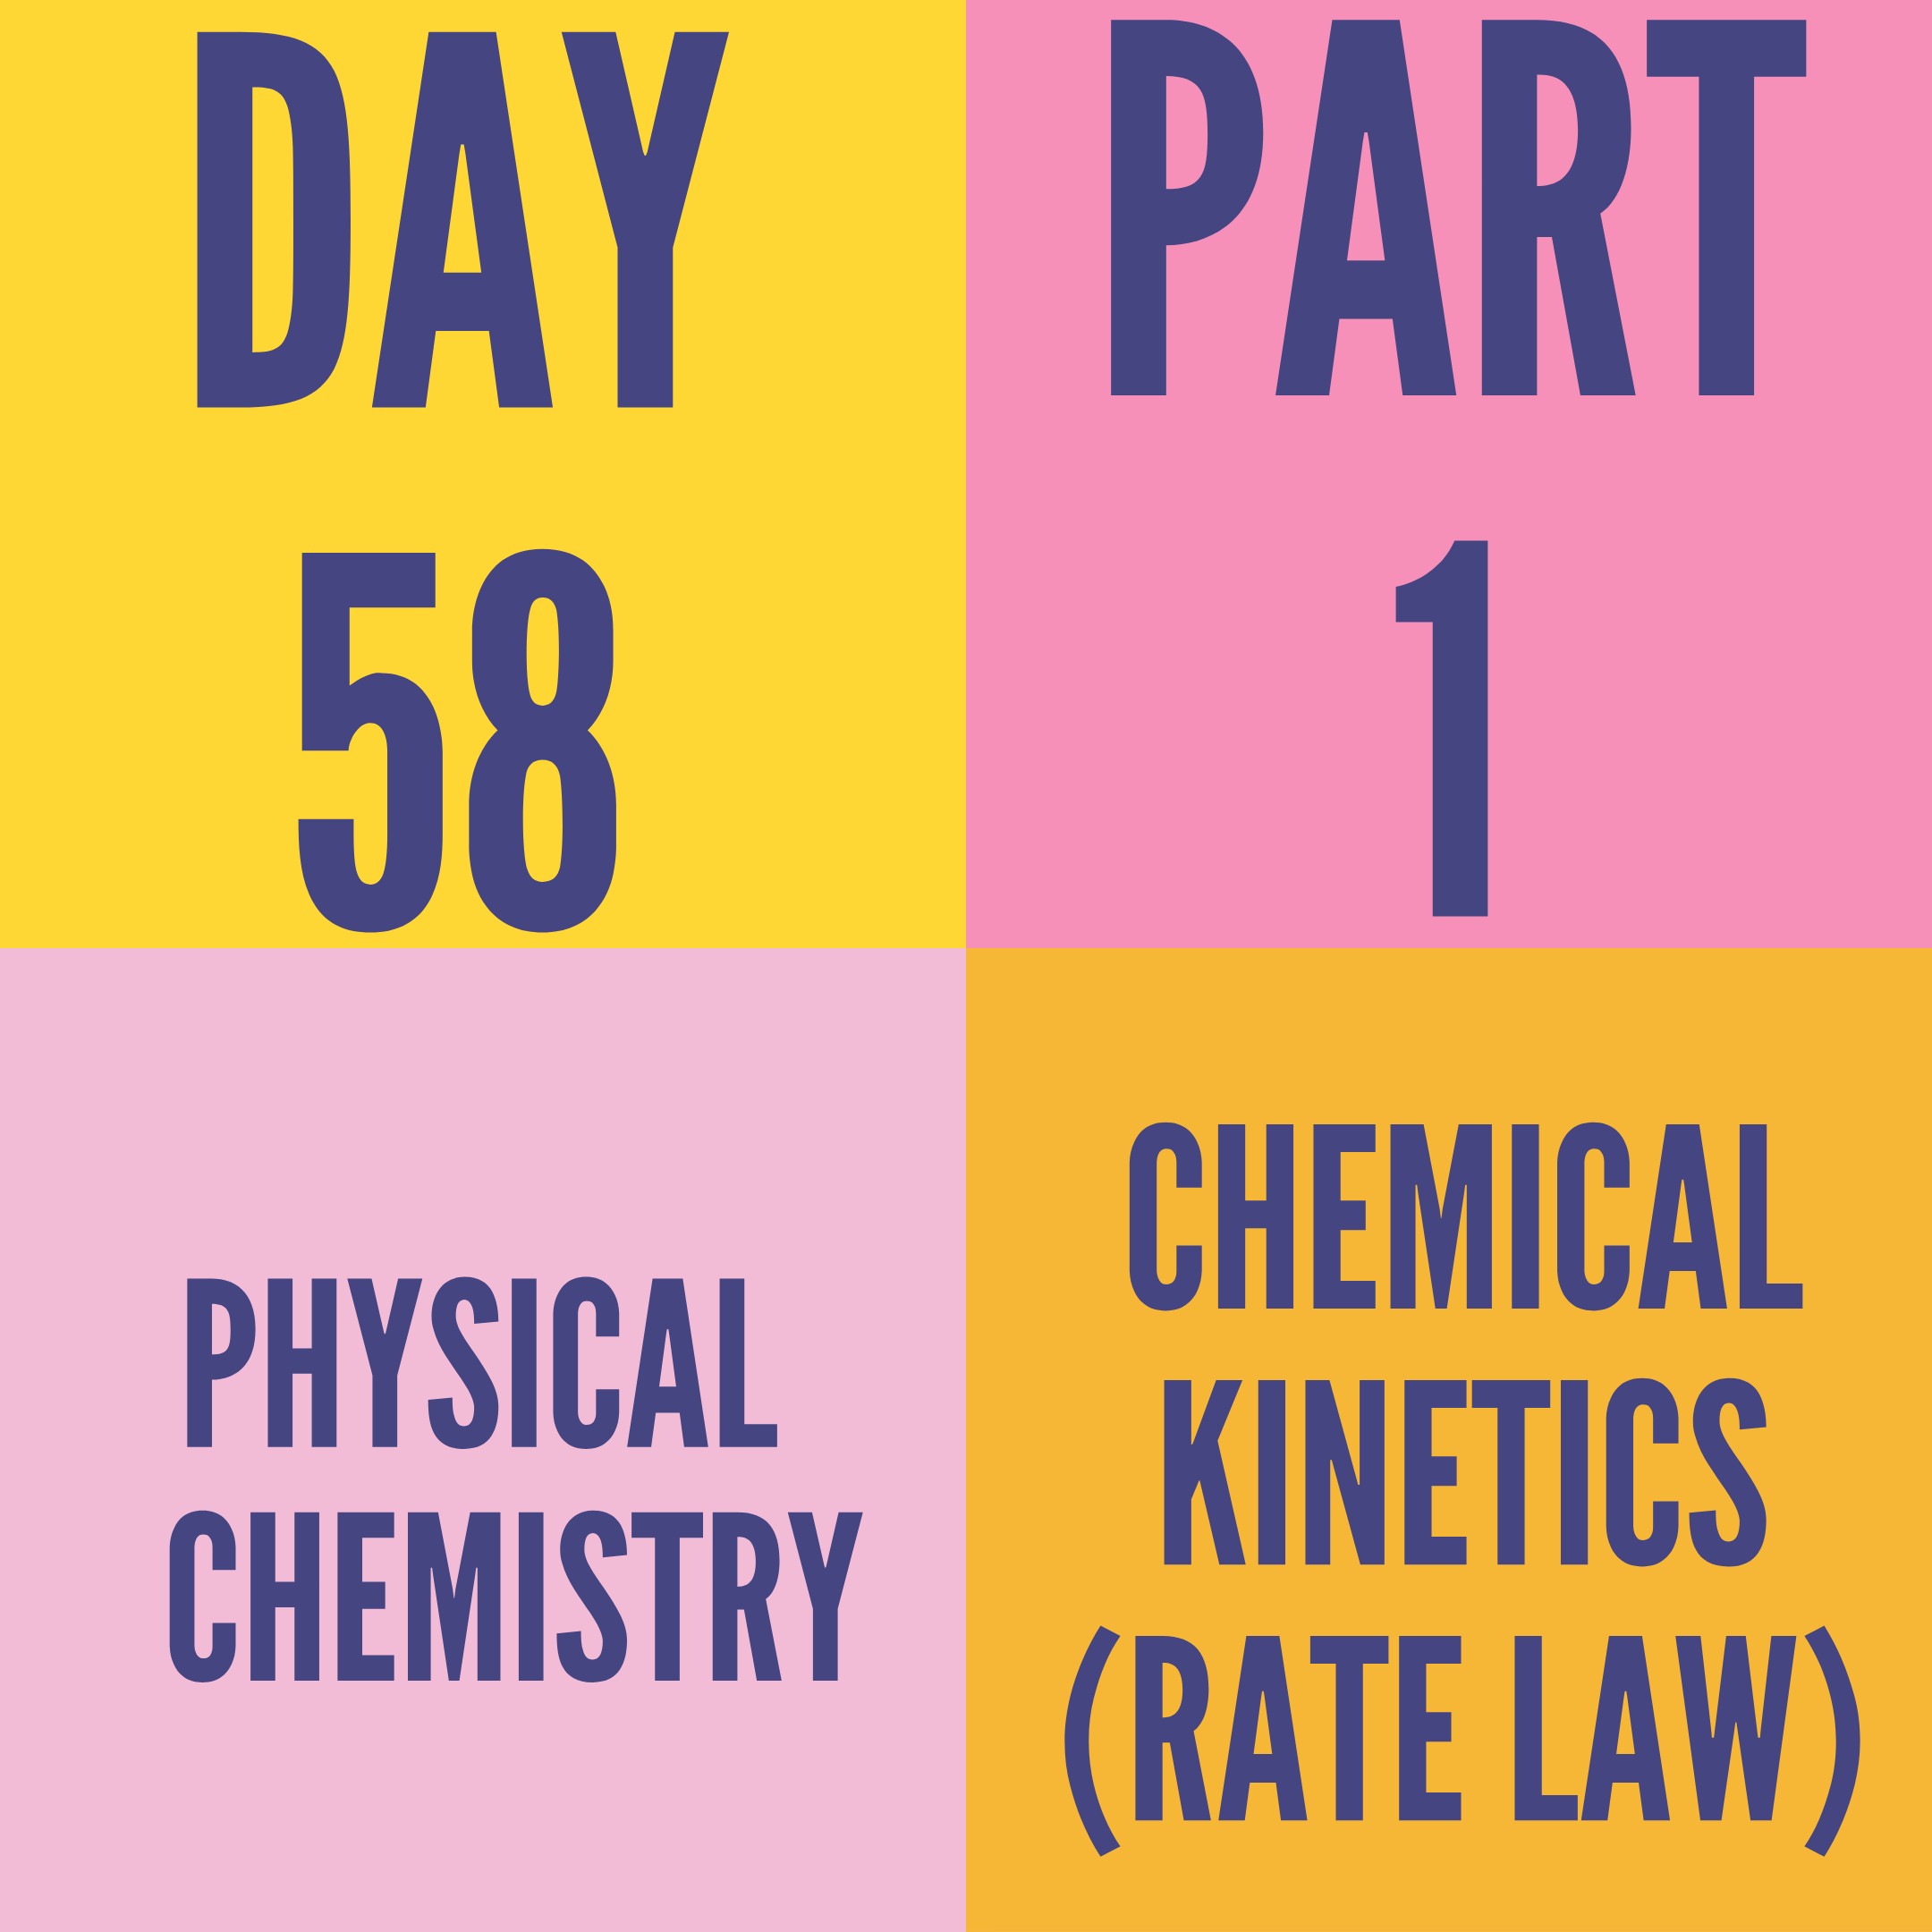 DAY-58 PART-1 CHEMICAL KINETICS (RATE LAW)